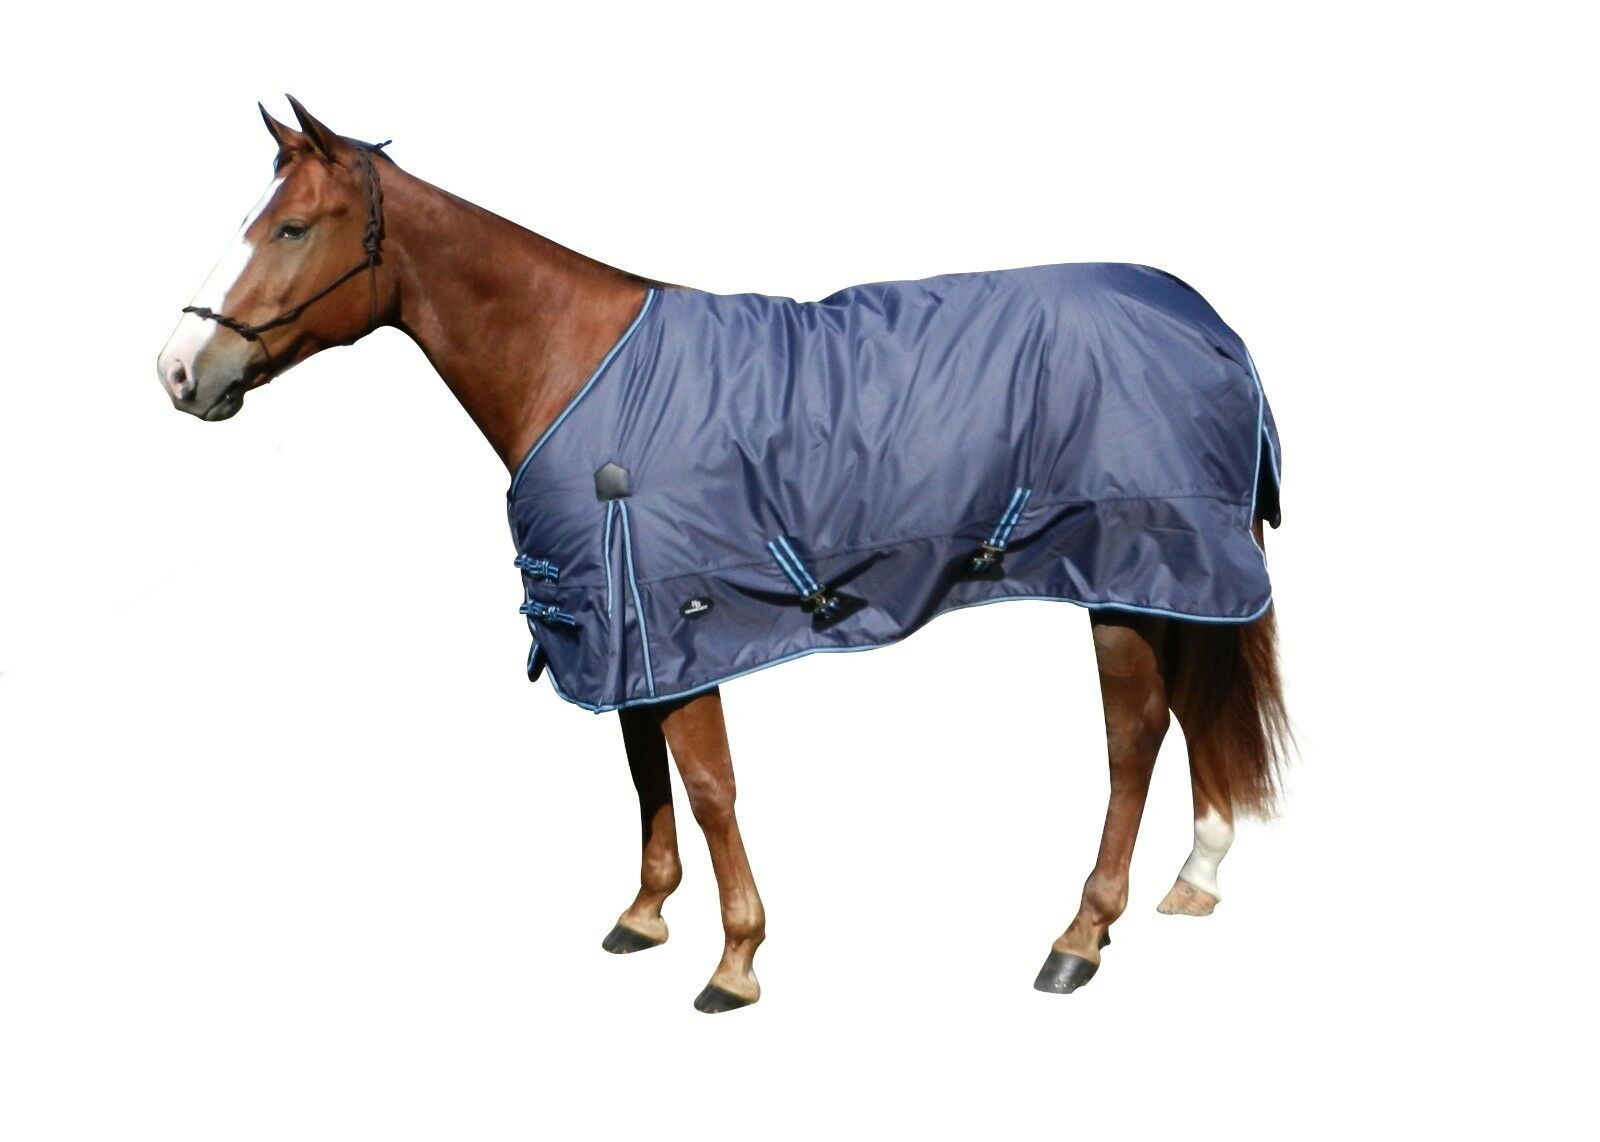 New  Waterproof Turnout Horse Blanket 72